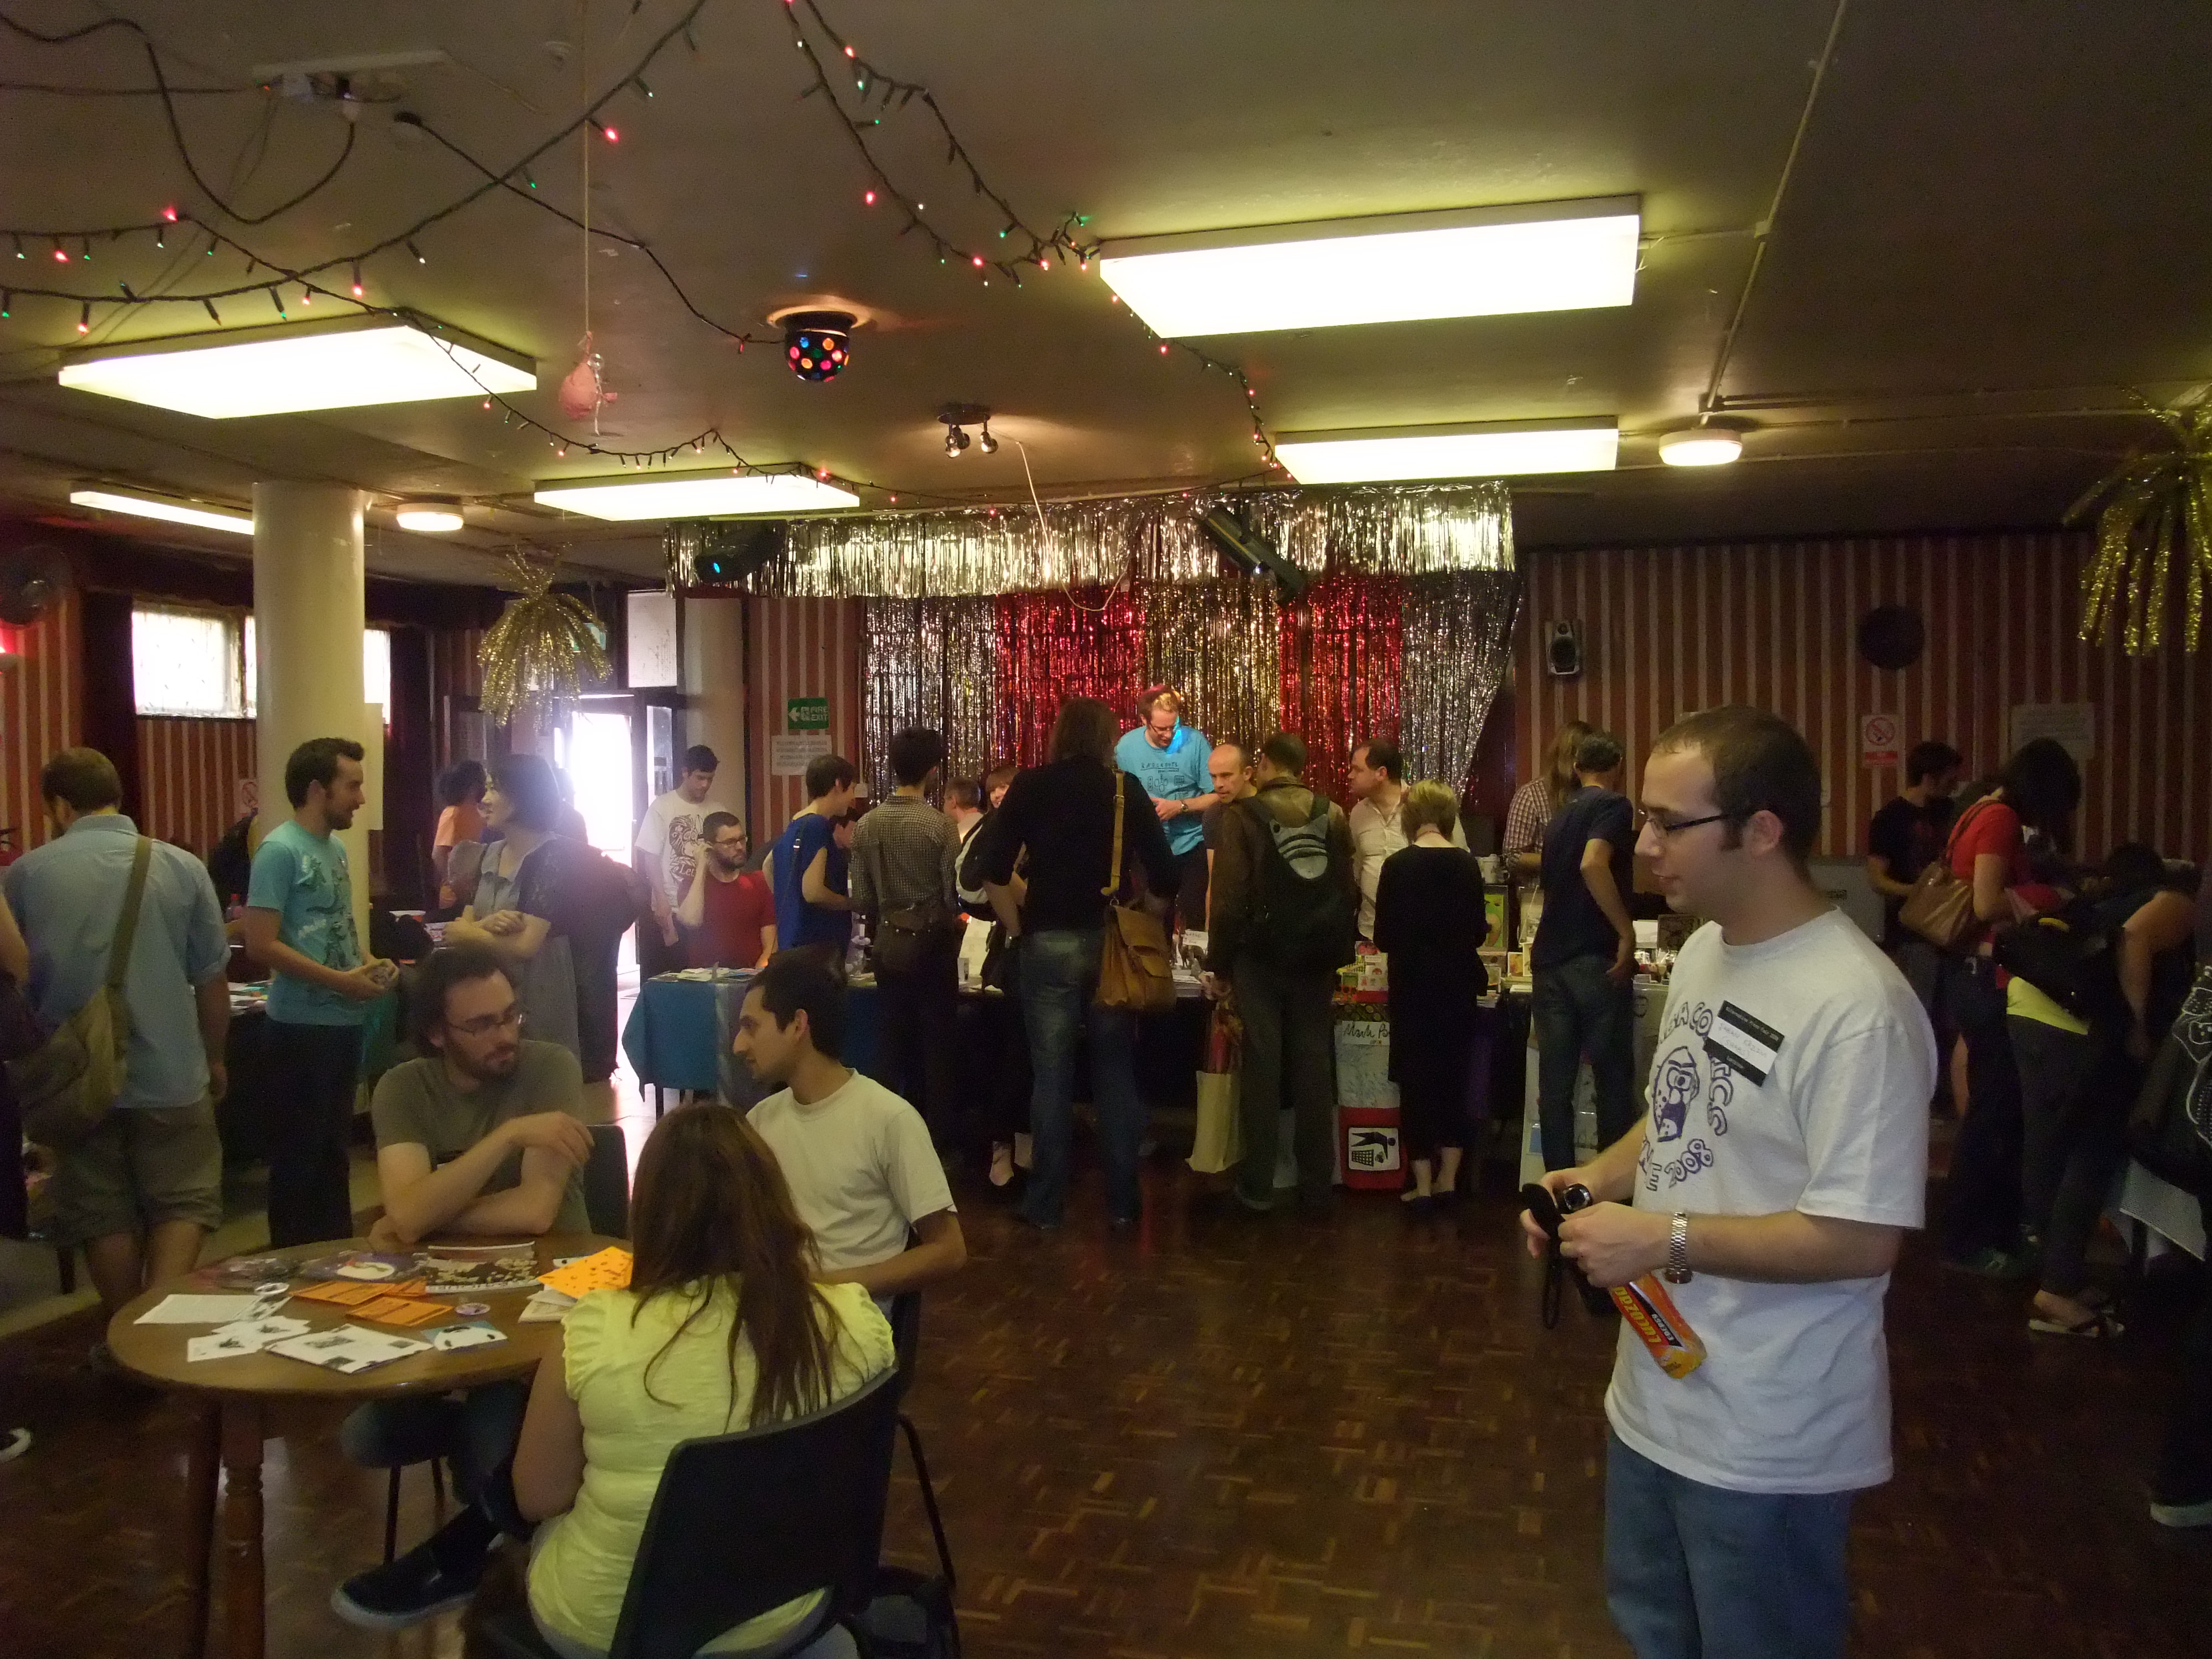 Good times...loads of people gather around zine tables